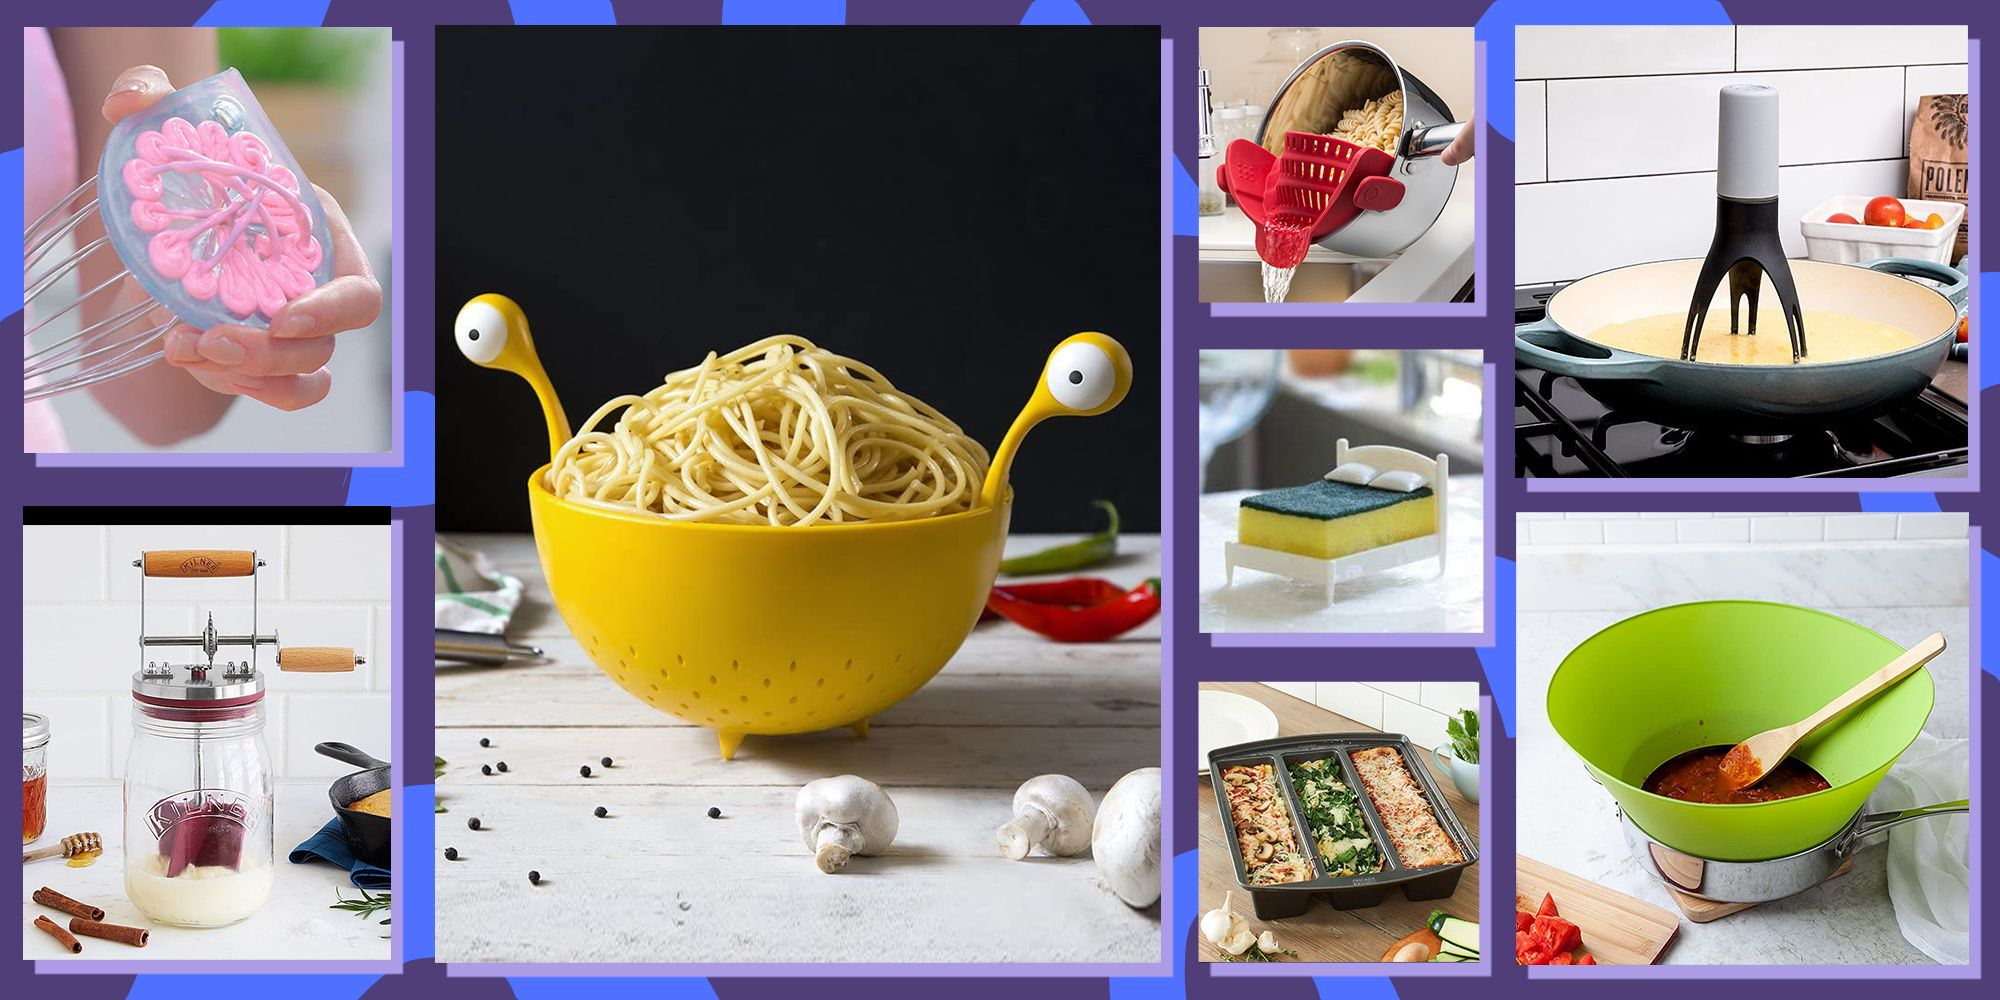 30 Coolest Kitchen Gadgets To Buy In 2020 Quirky Kitchen Tools